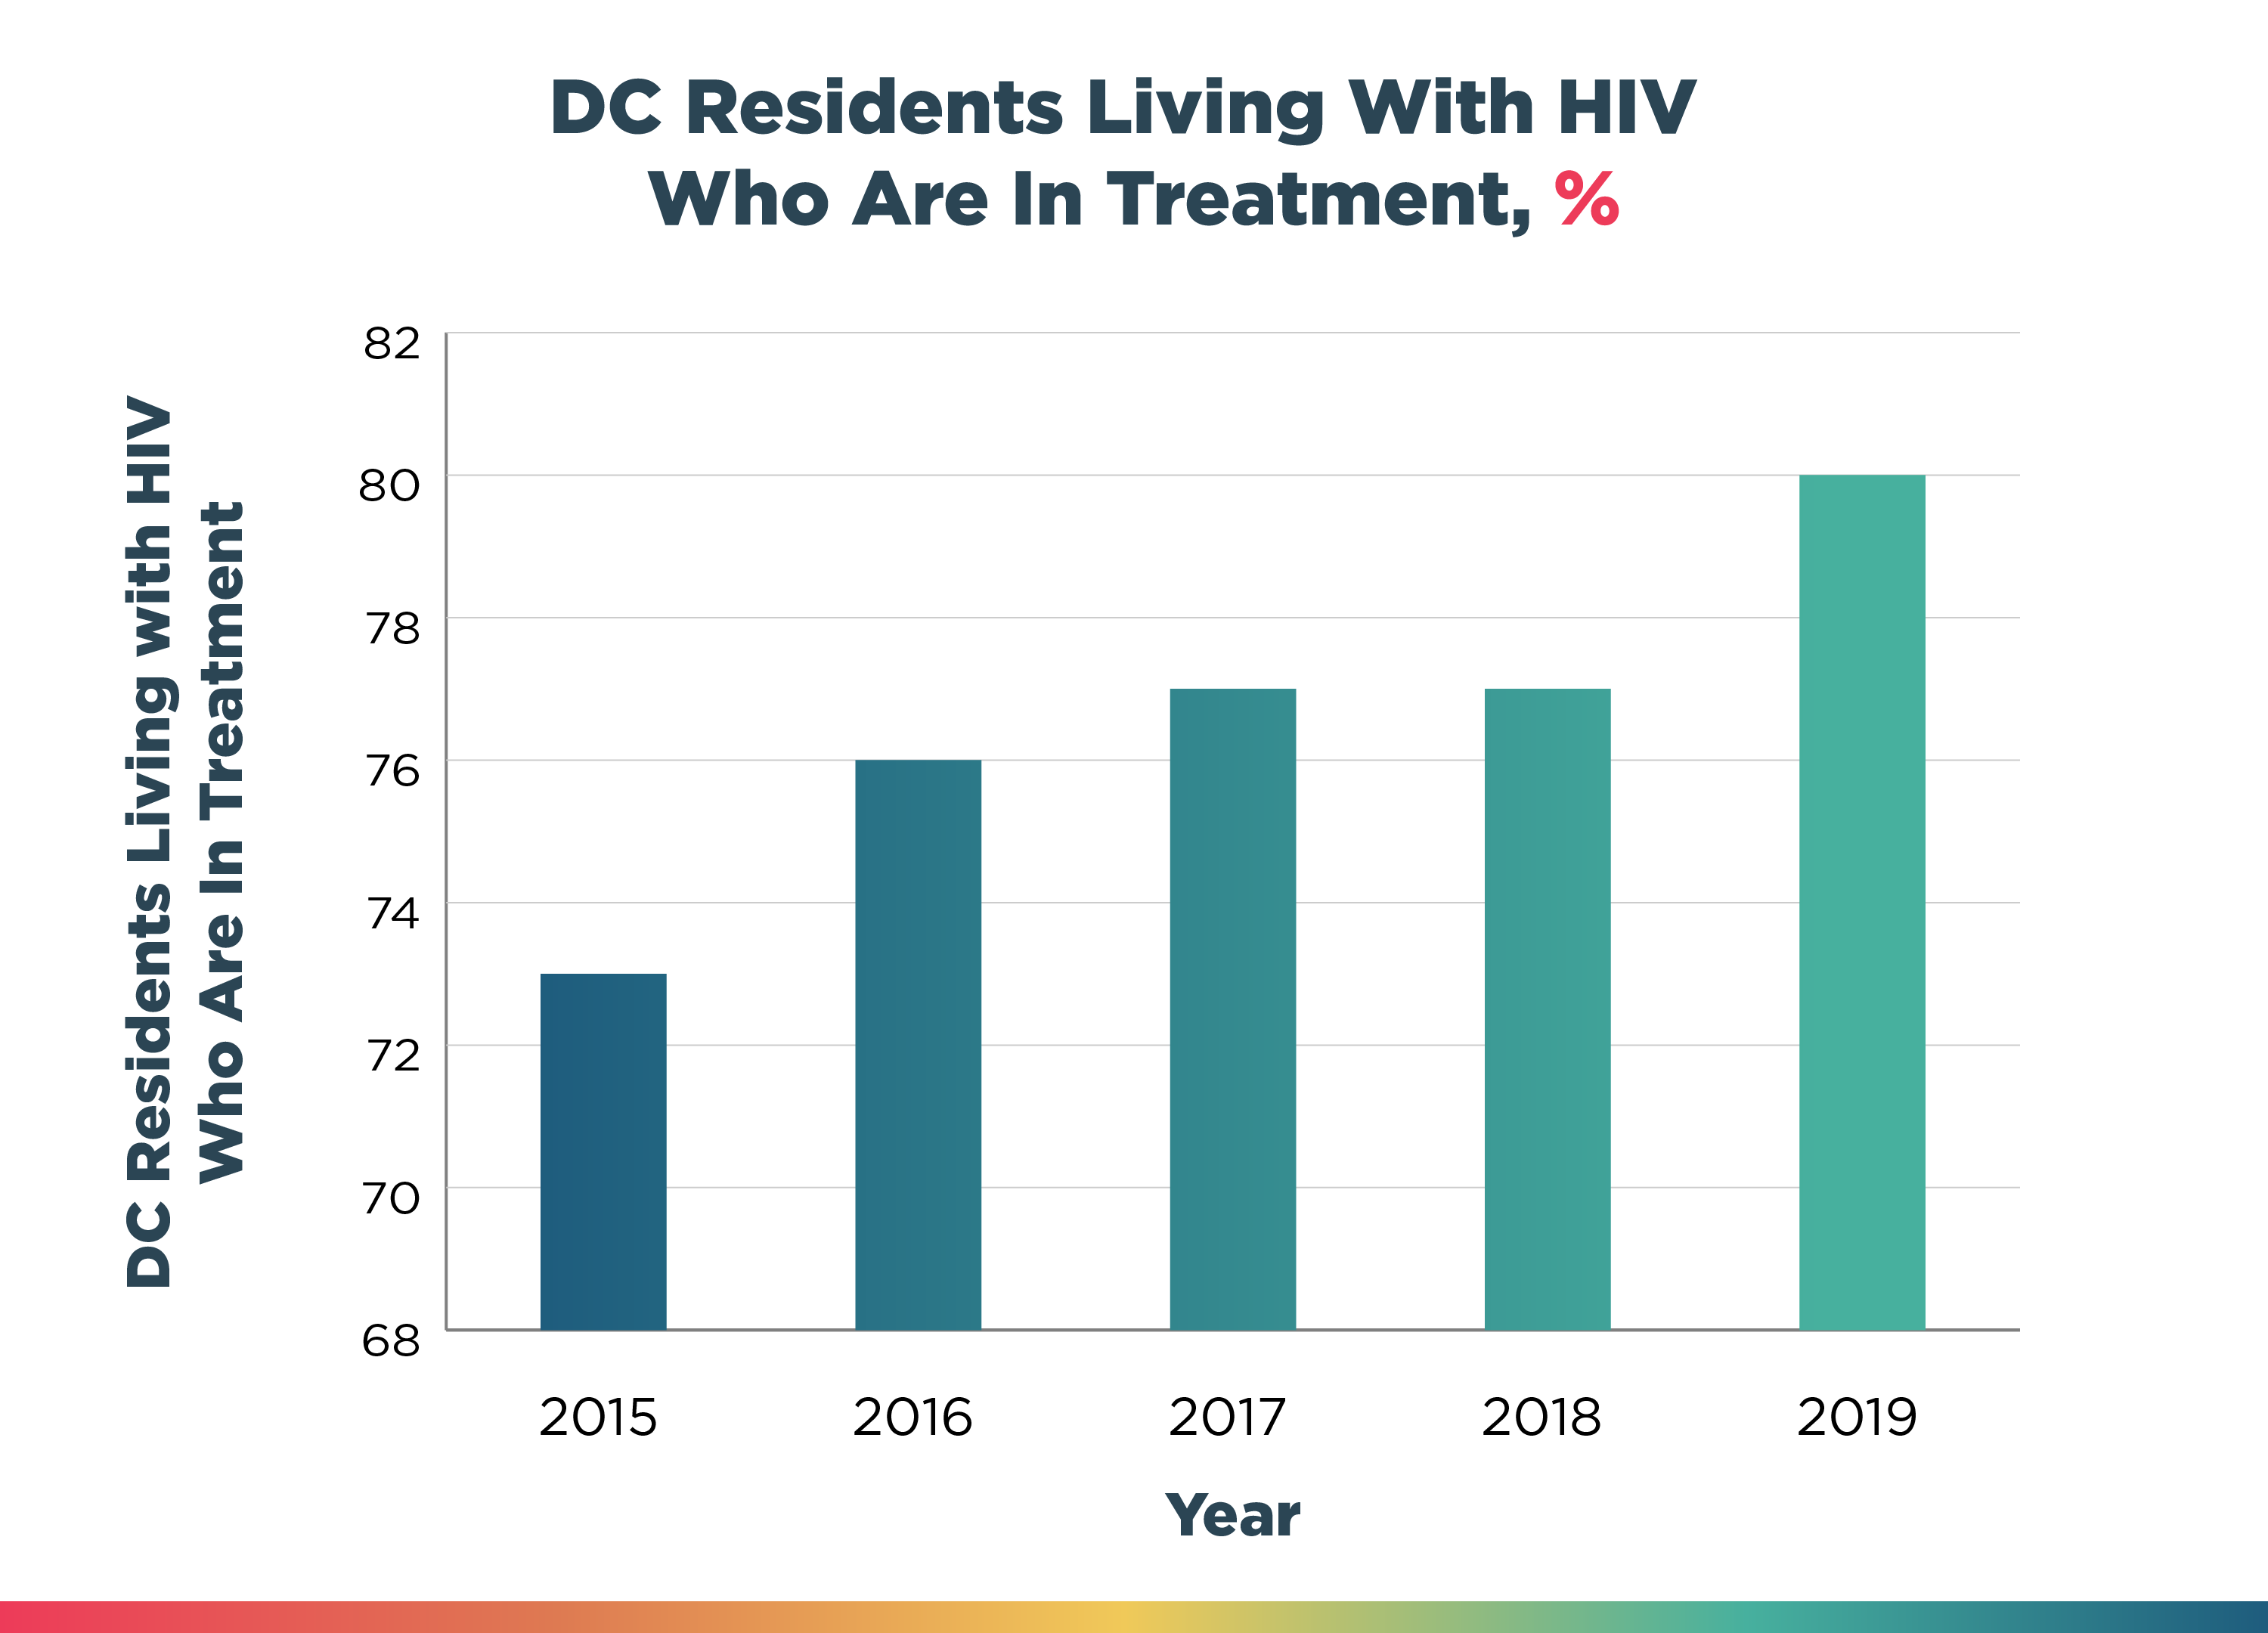 DC Residents Living With HIV Who Are In Treatment